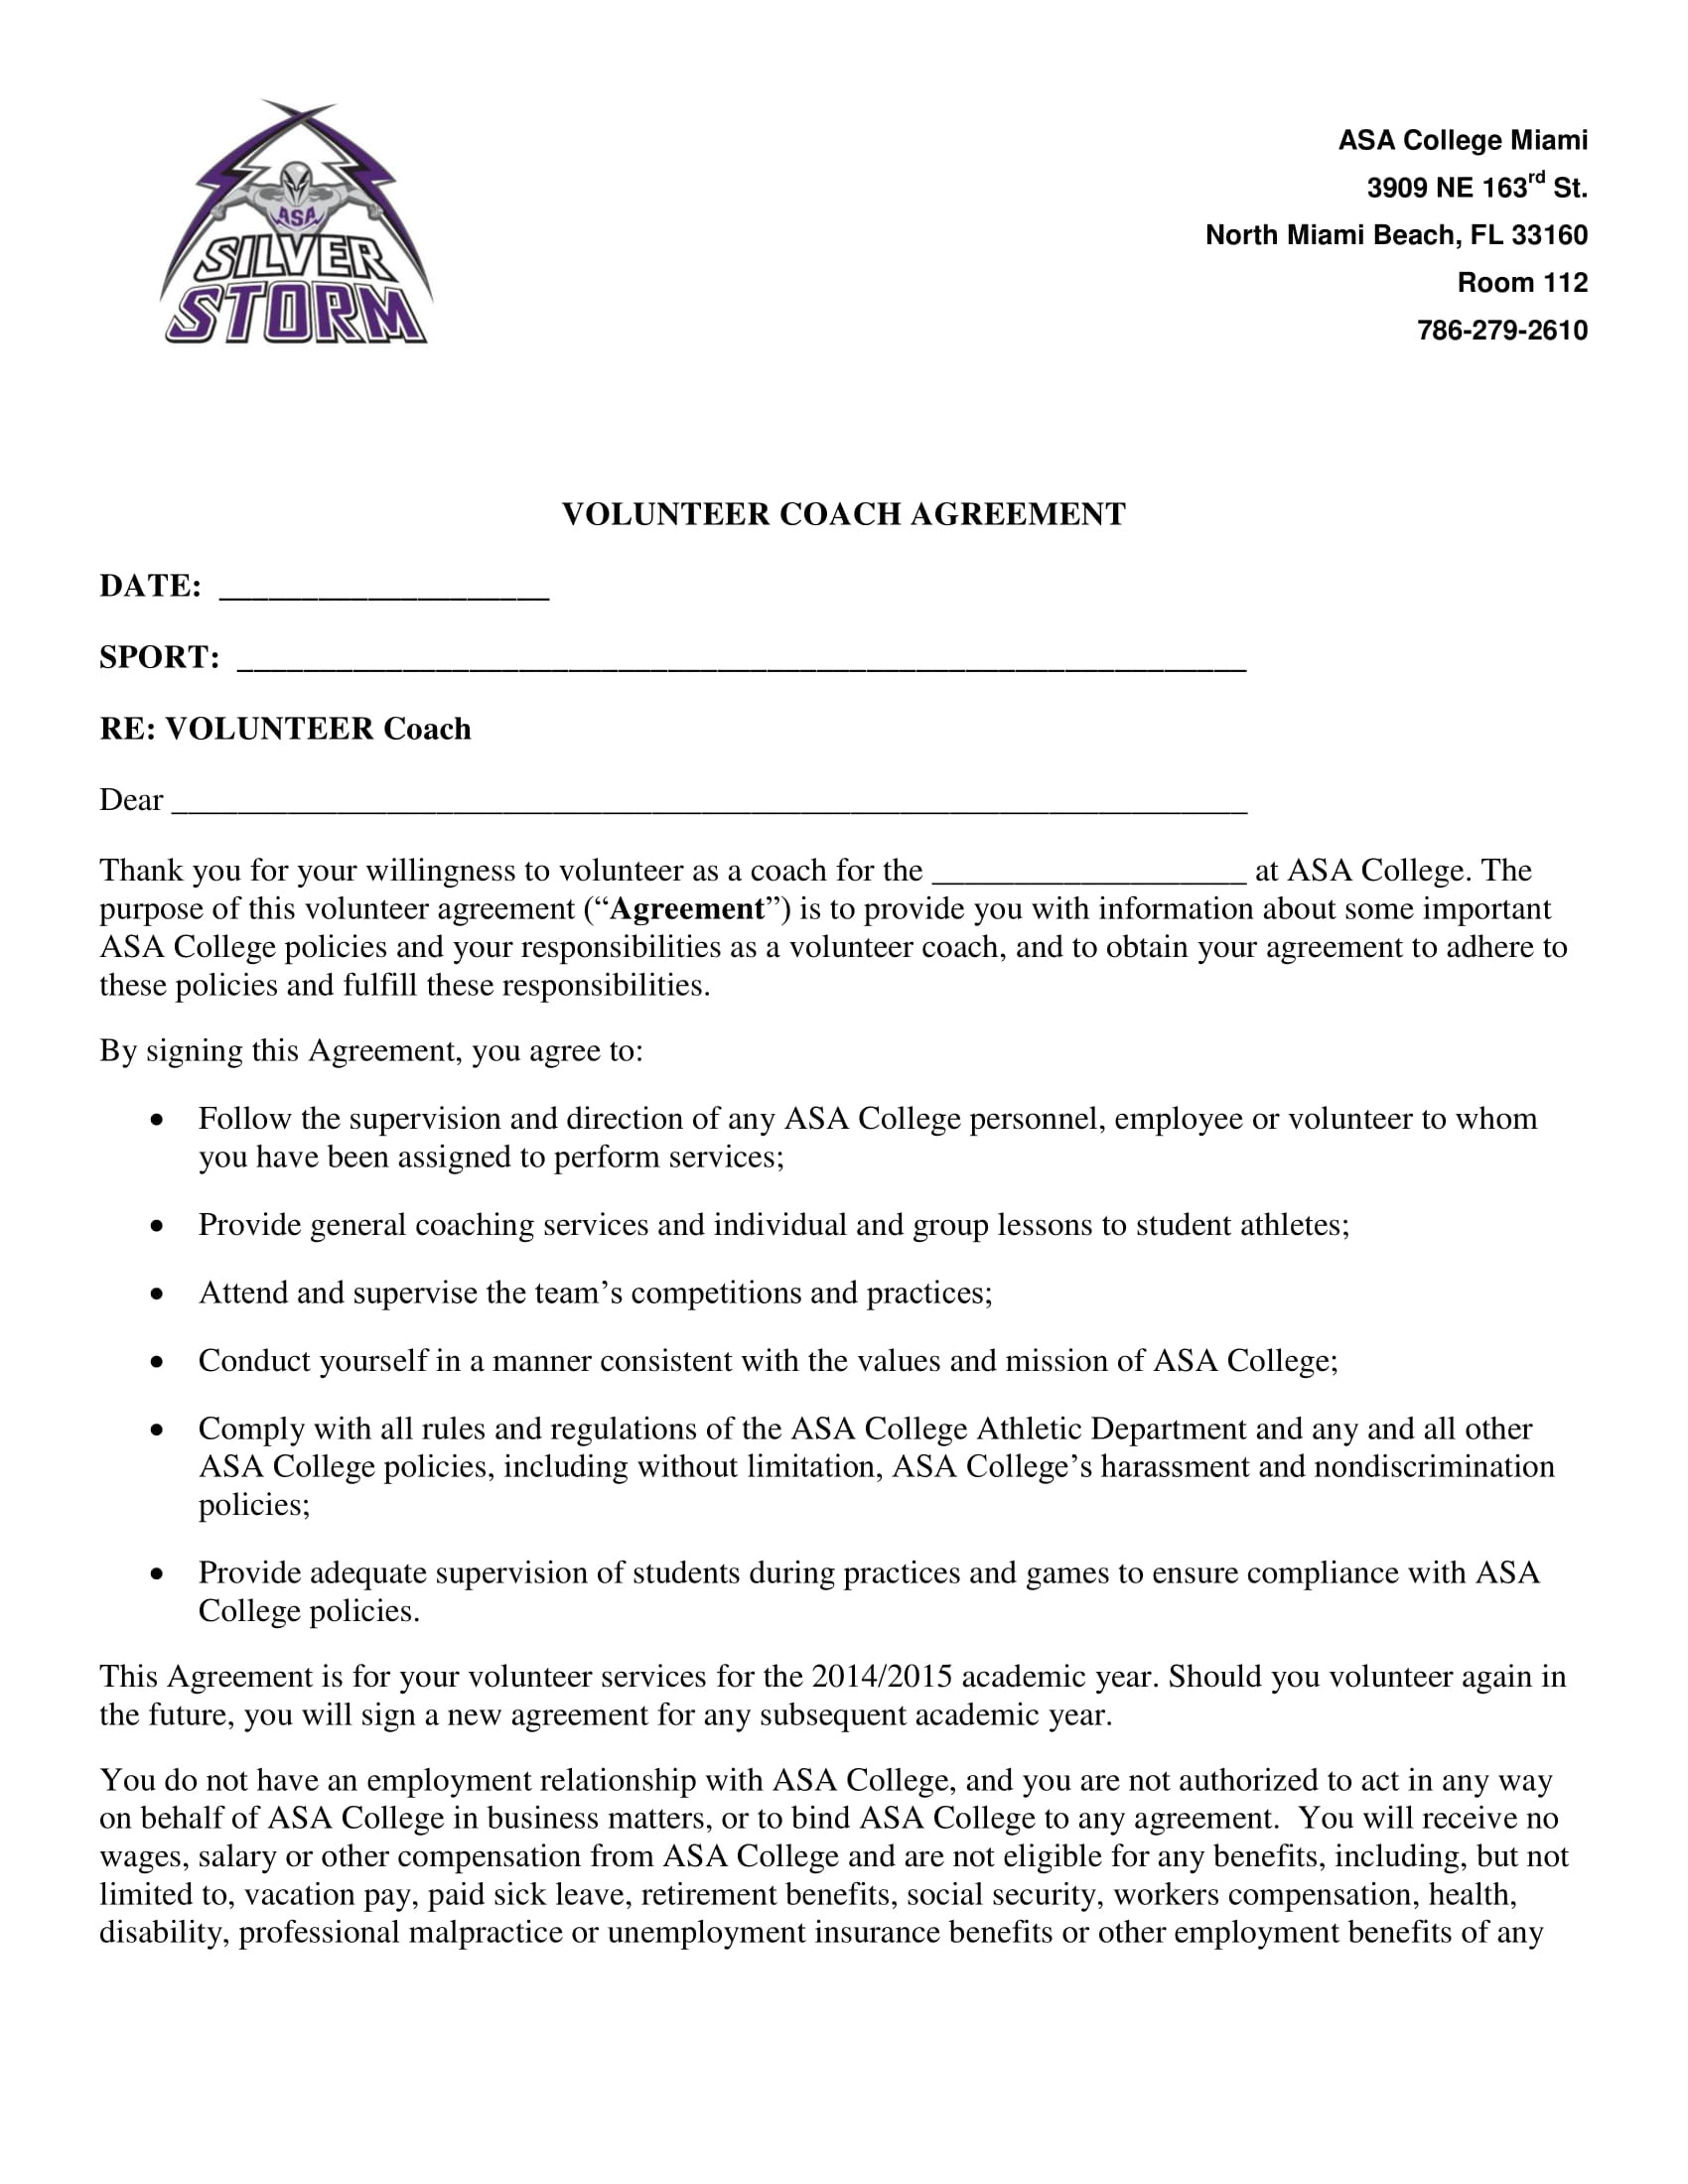 sports coach contract